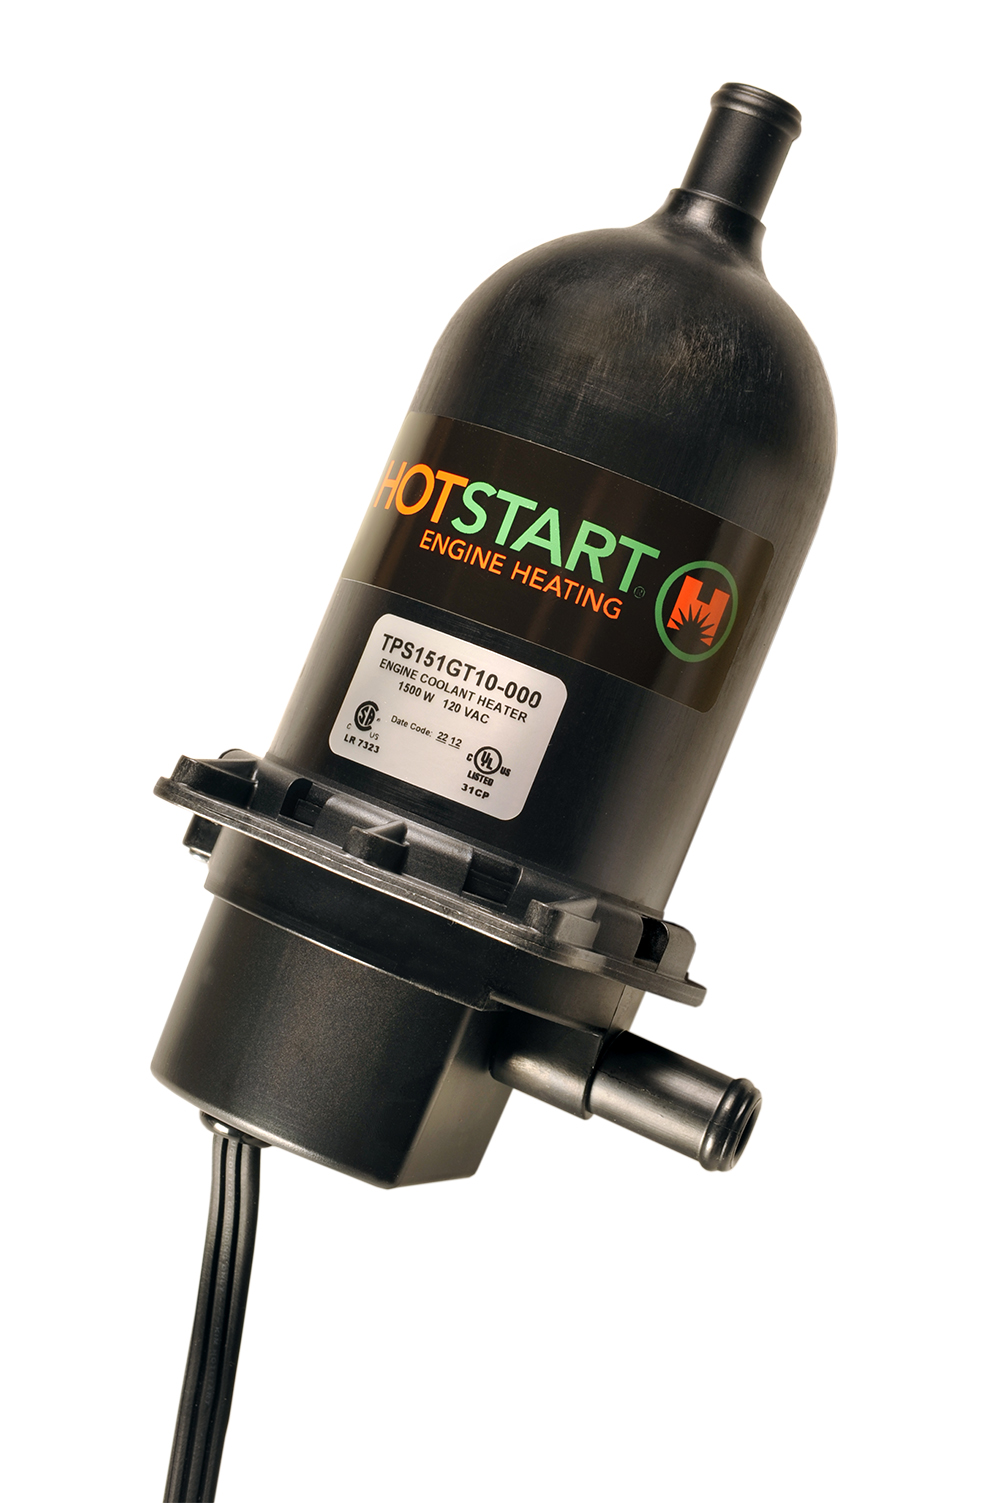 HOTSTART-TPS-Coolant-Engine-Heater